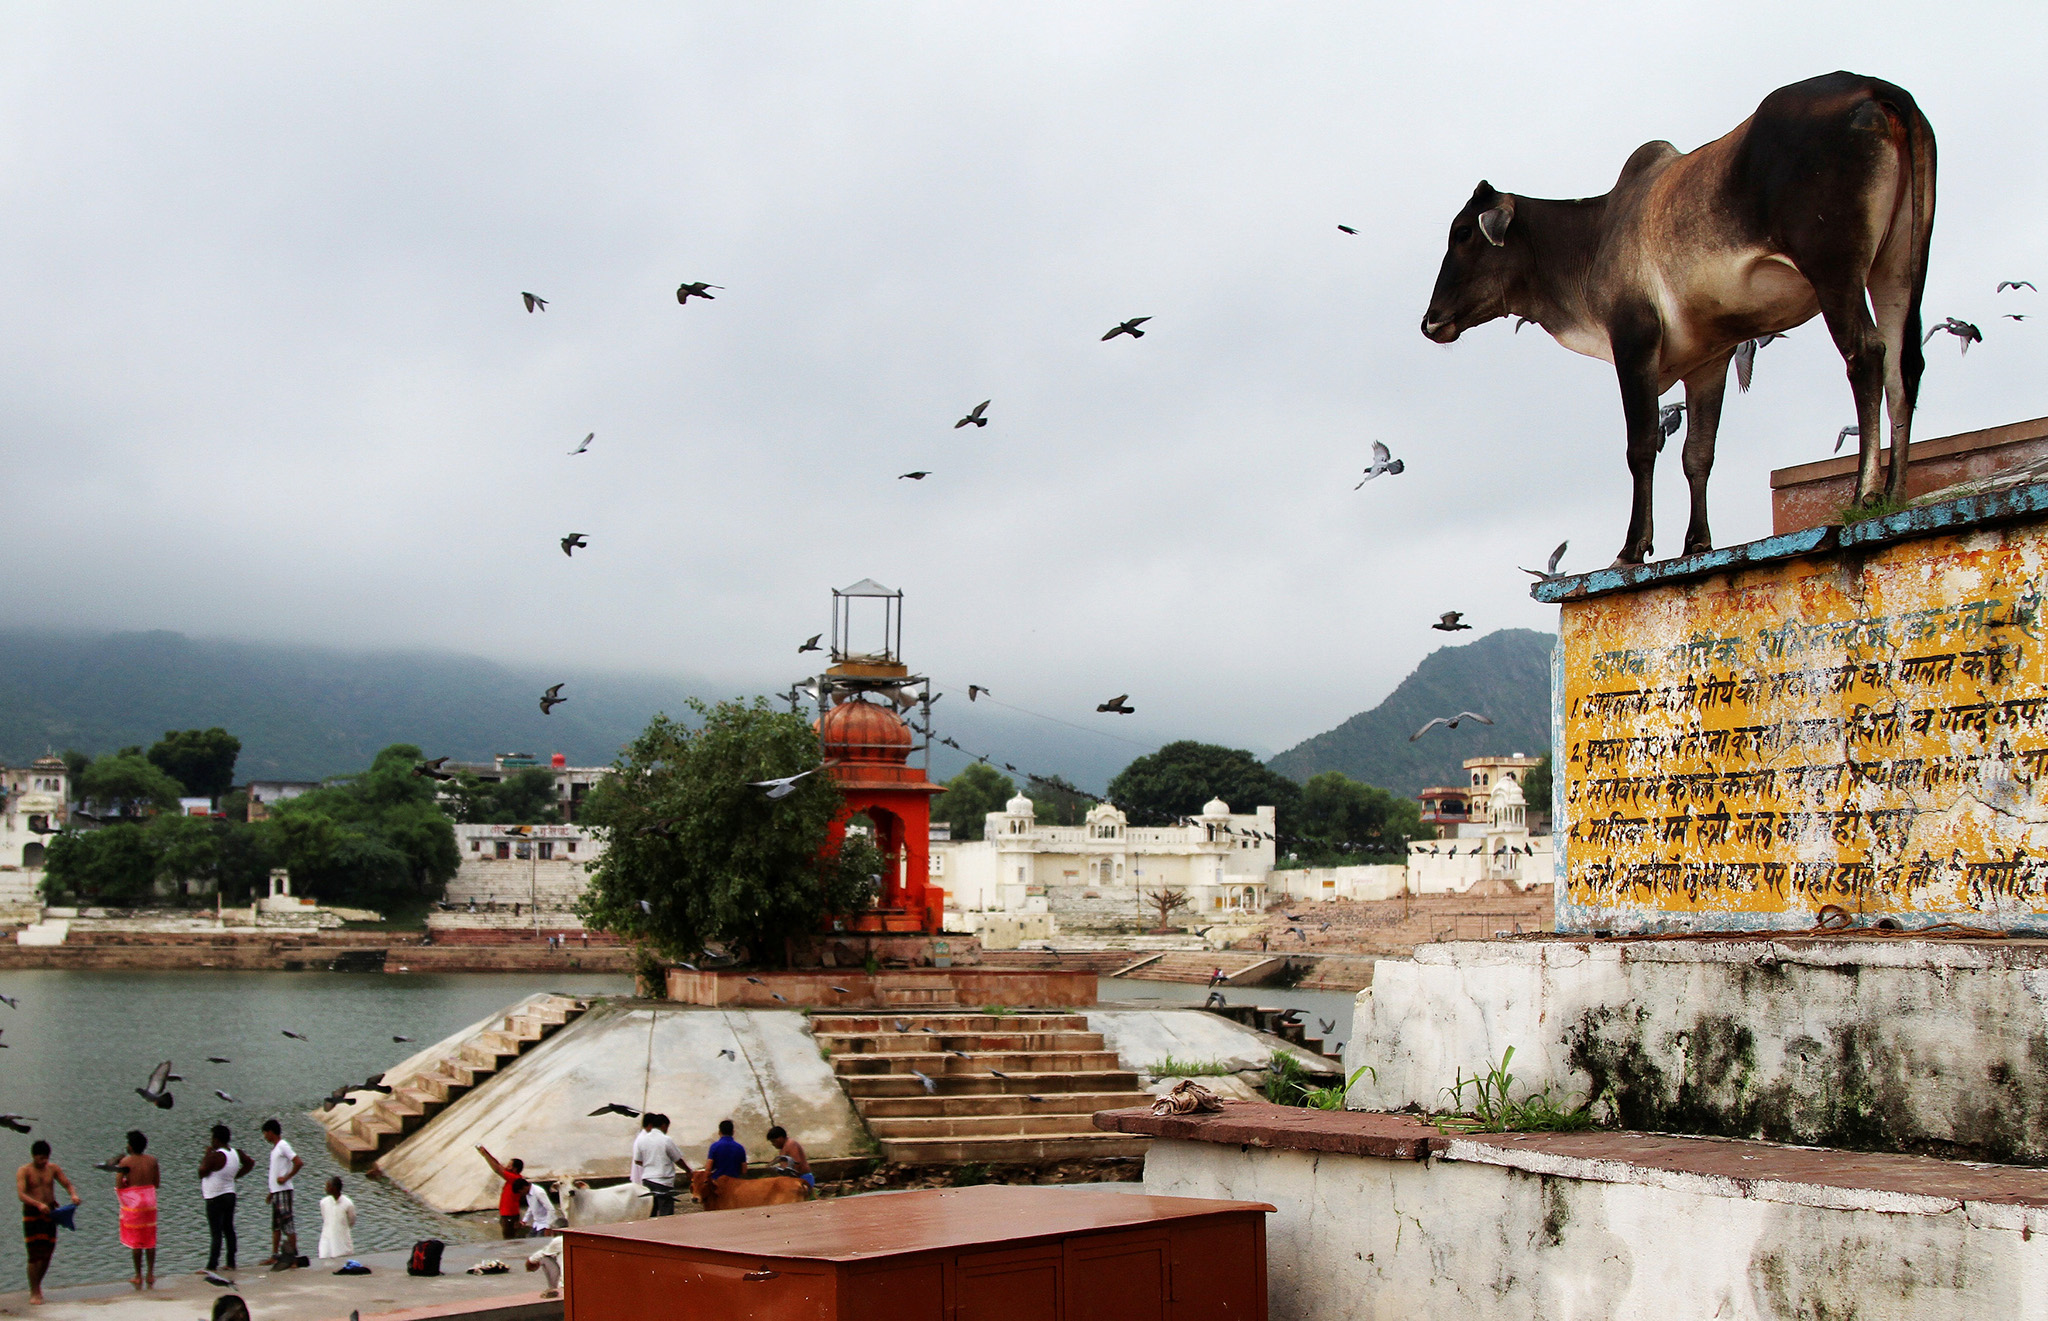 A cow stands outside a temple at a lake in Pushkar, in the desert state of Rajasthan, India